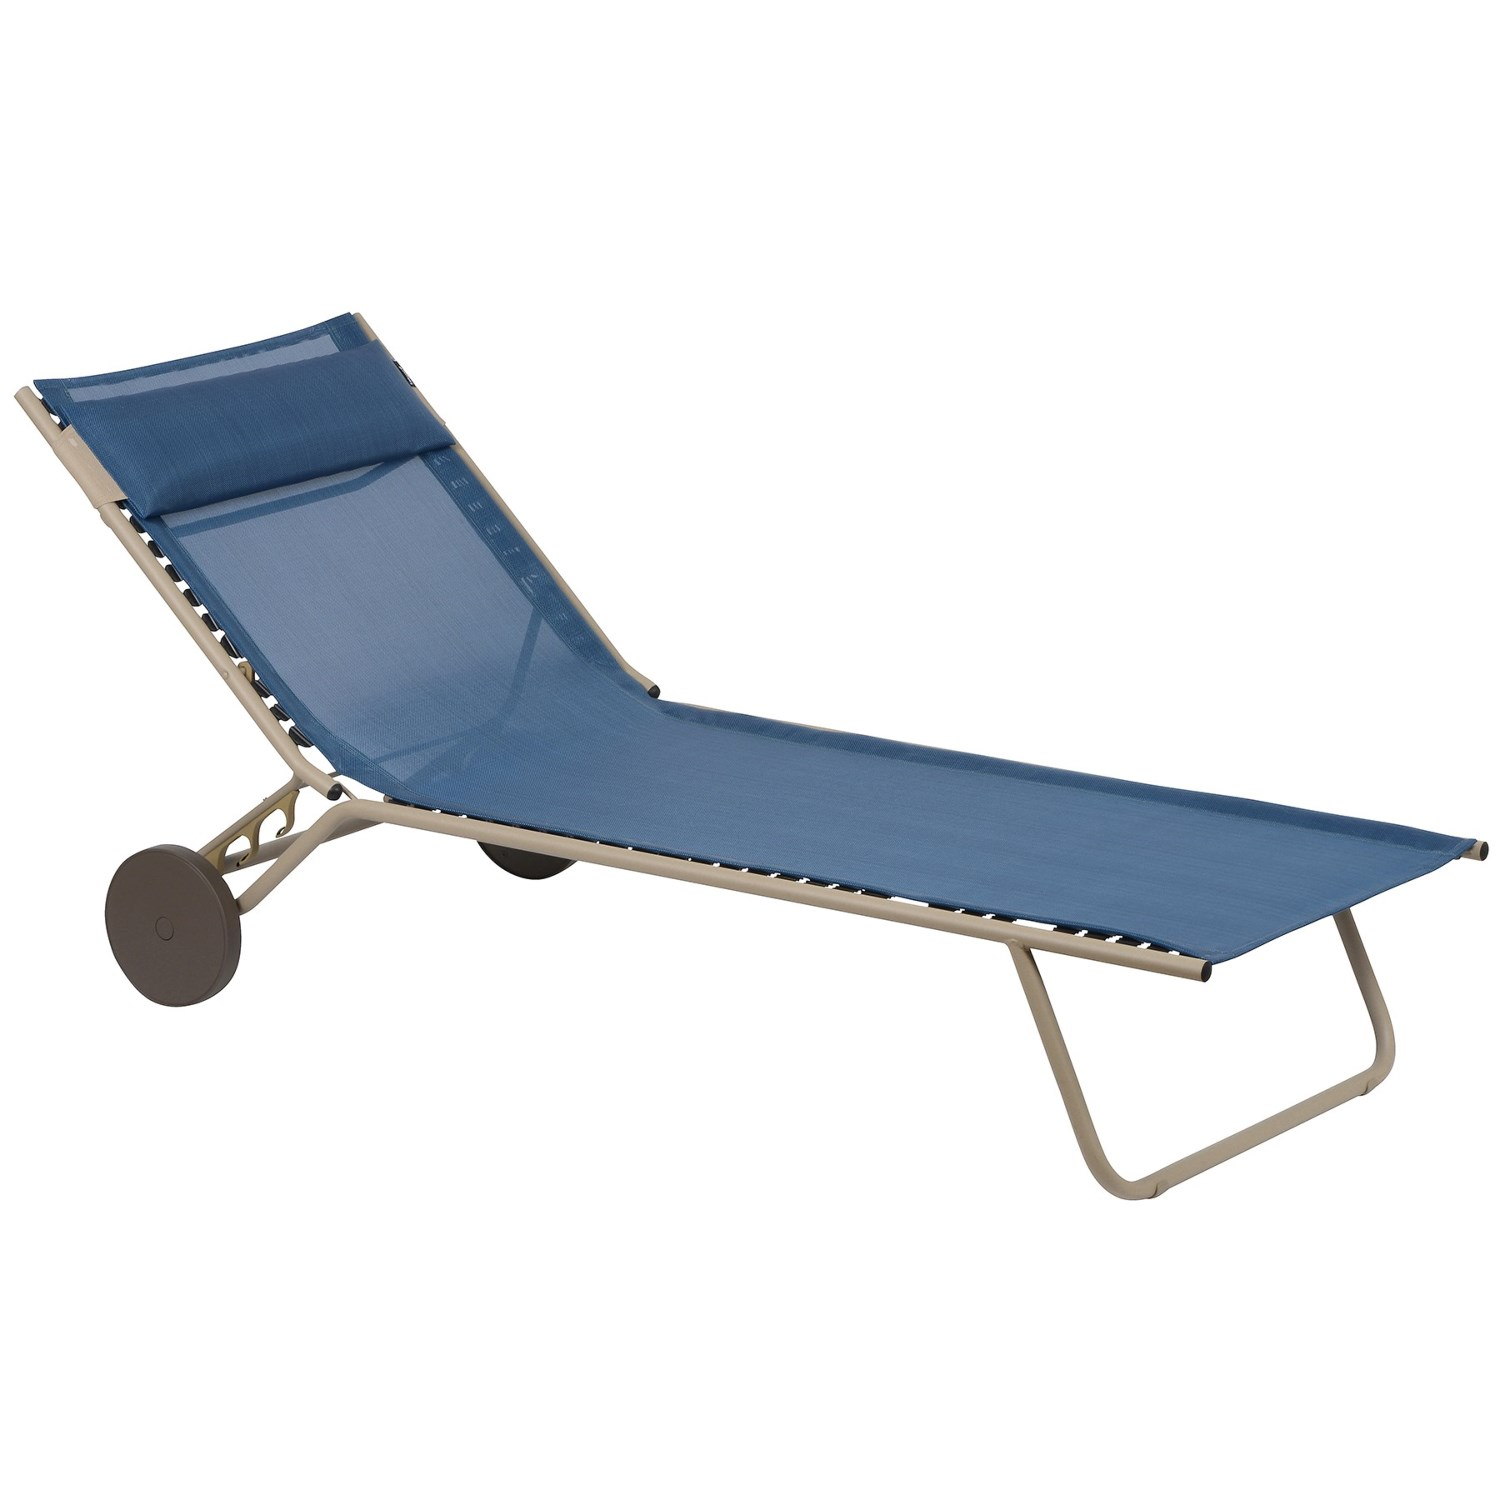 Lafuma miami sun bed folding chaise lounge chair save 64 - Chaise pliante lafuma ...